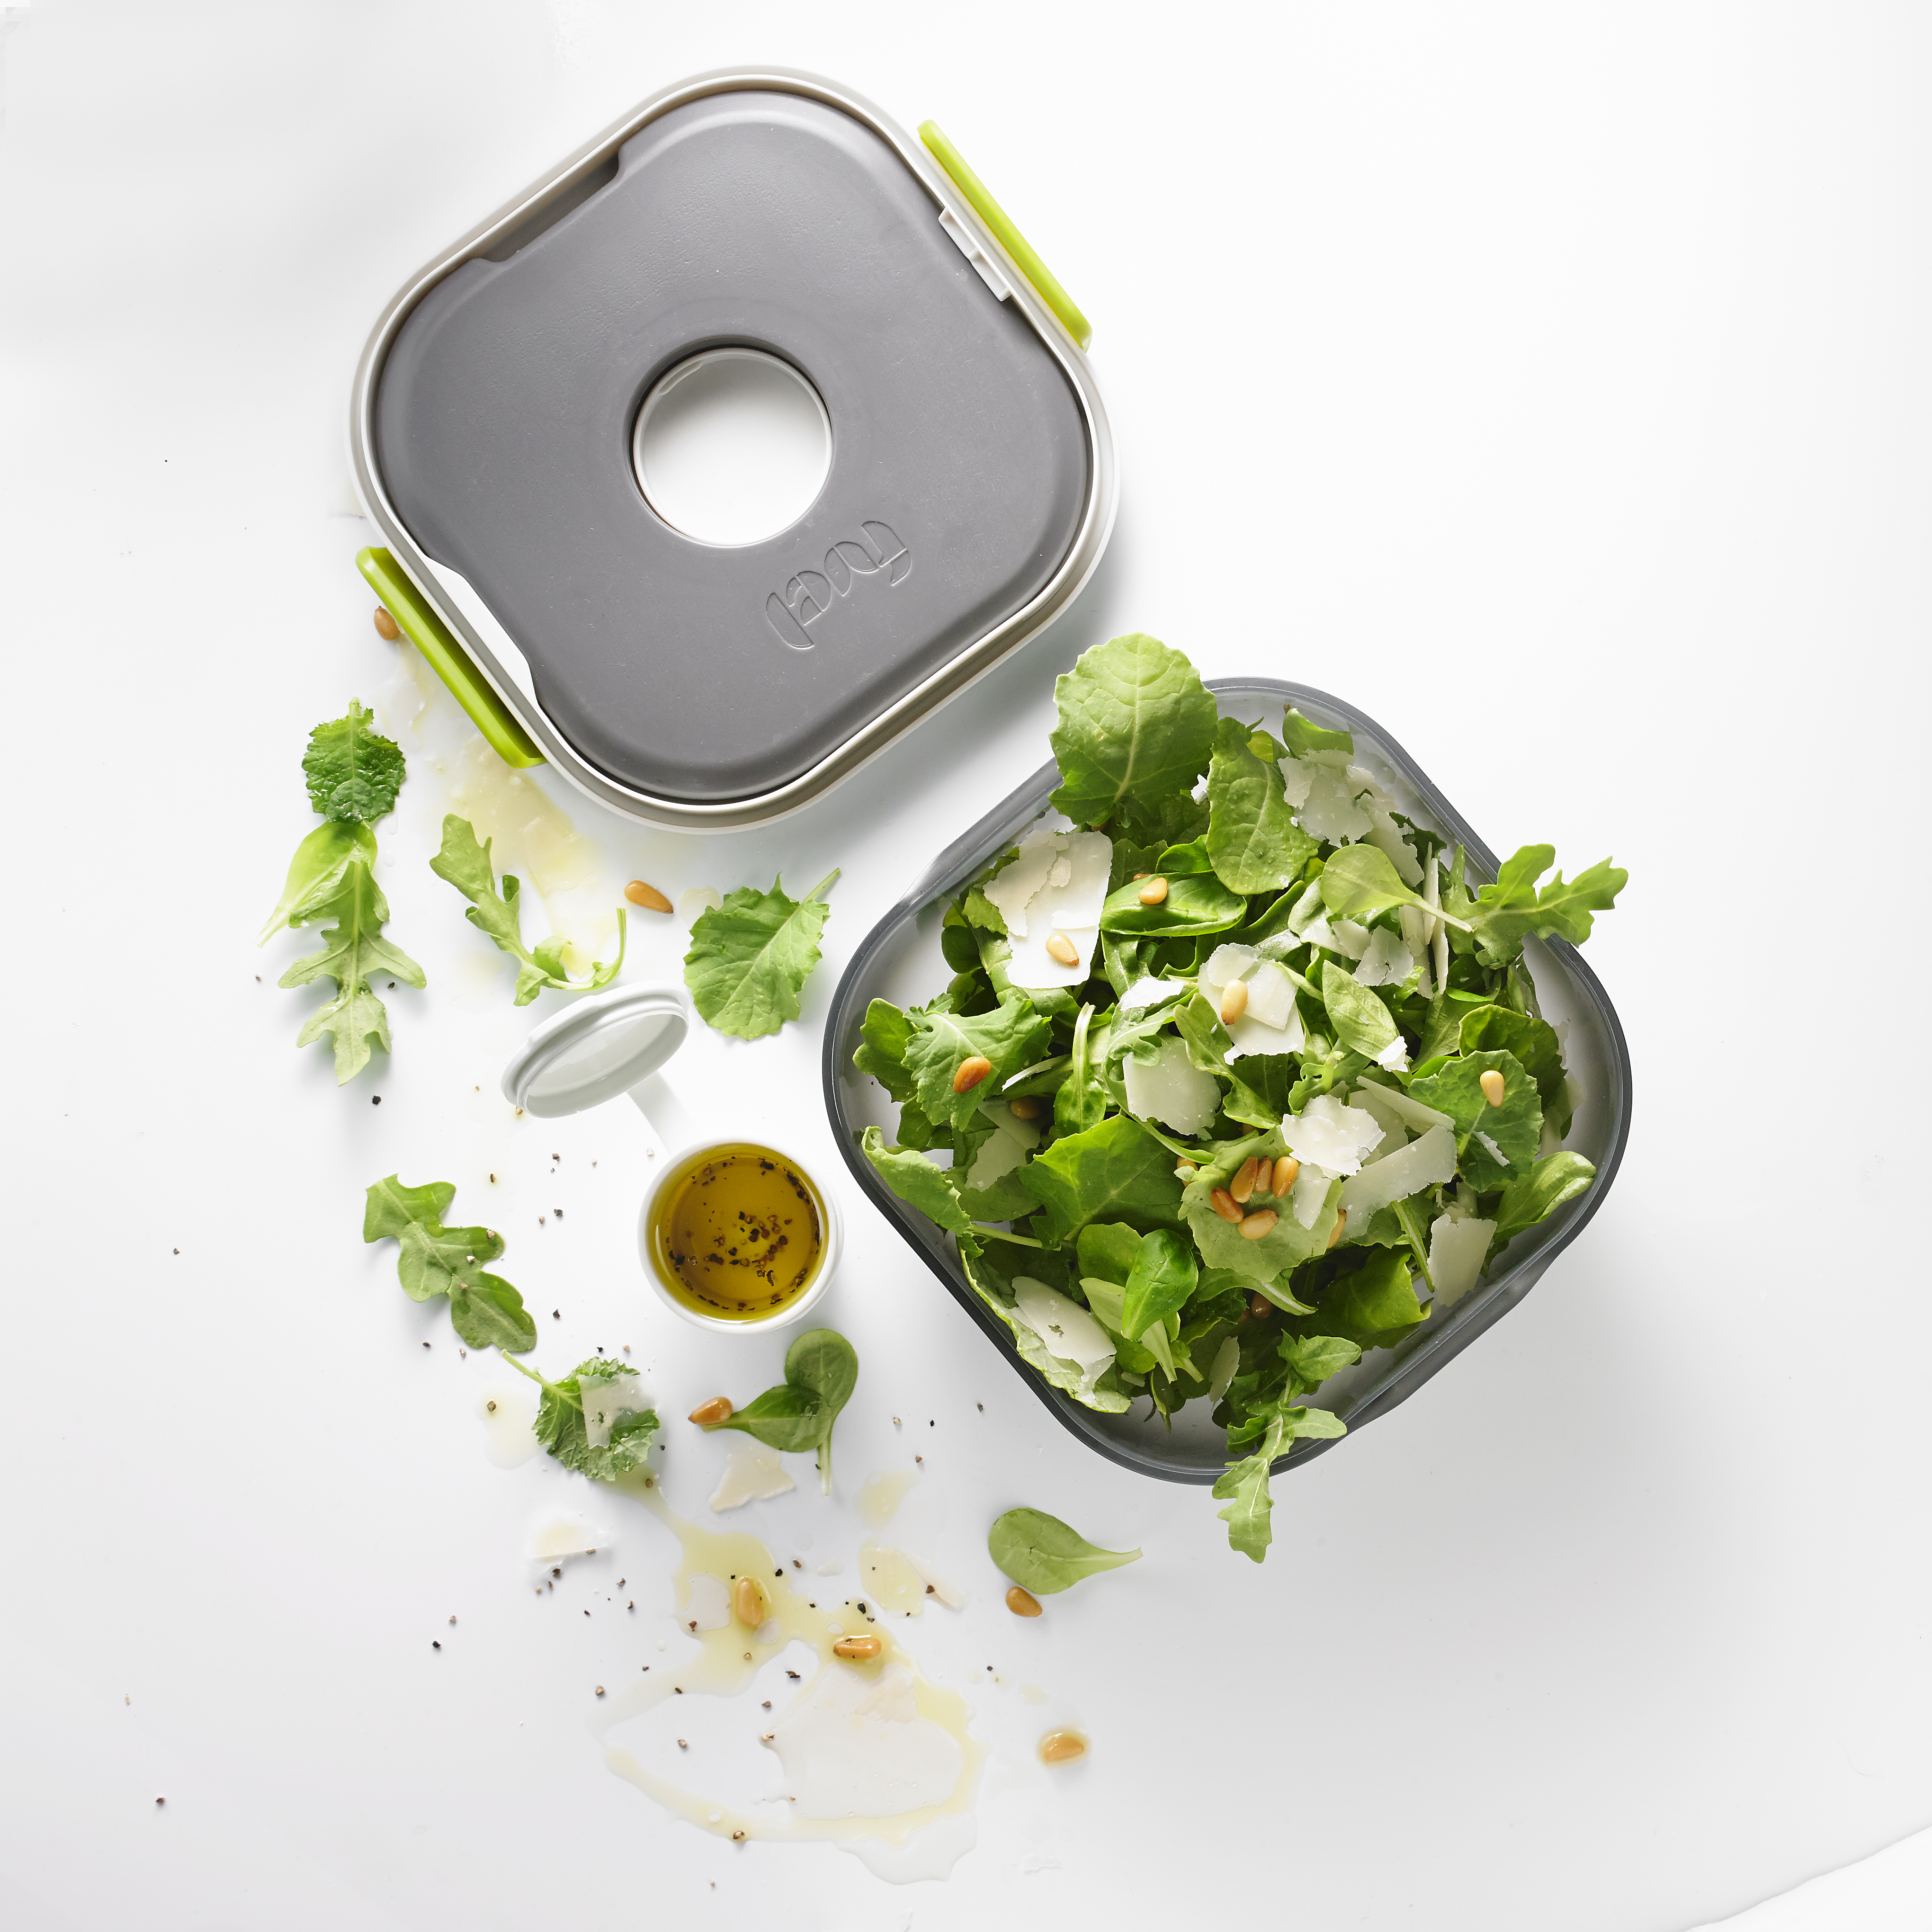 Inspiringkitchen Com Spill Proof Containers For Meals On